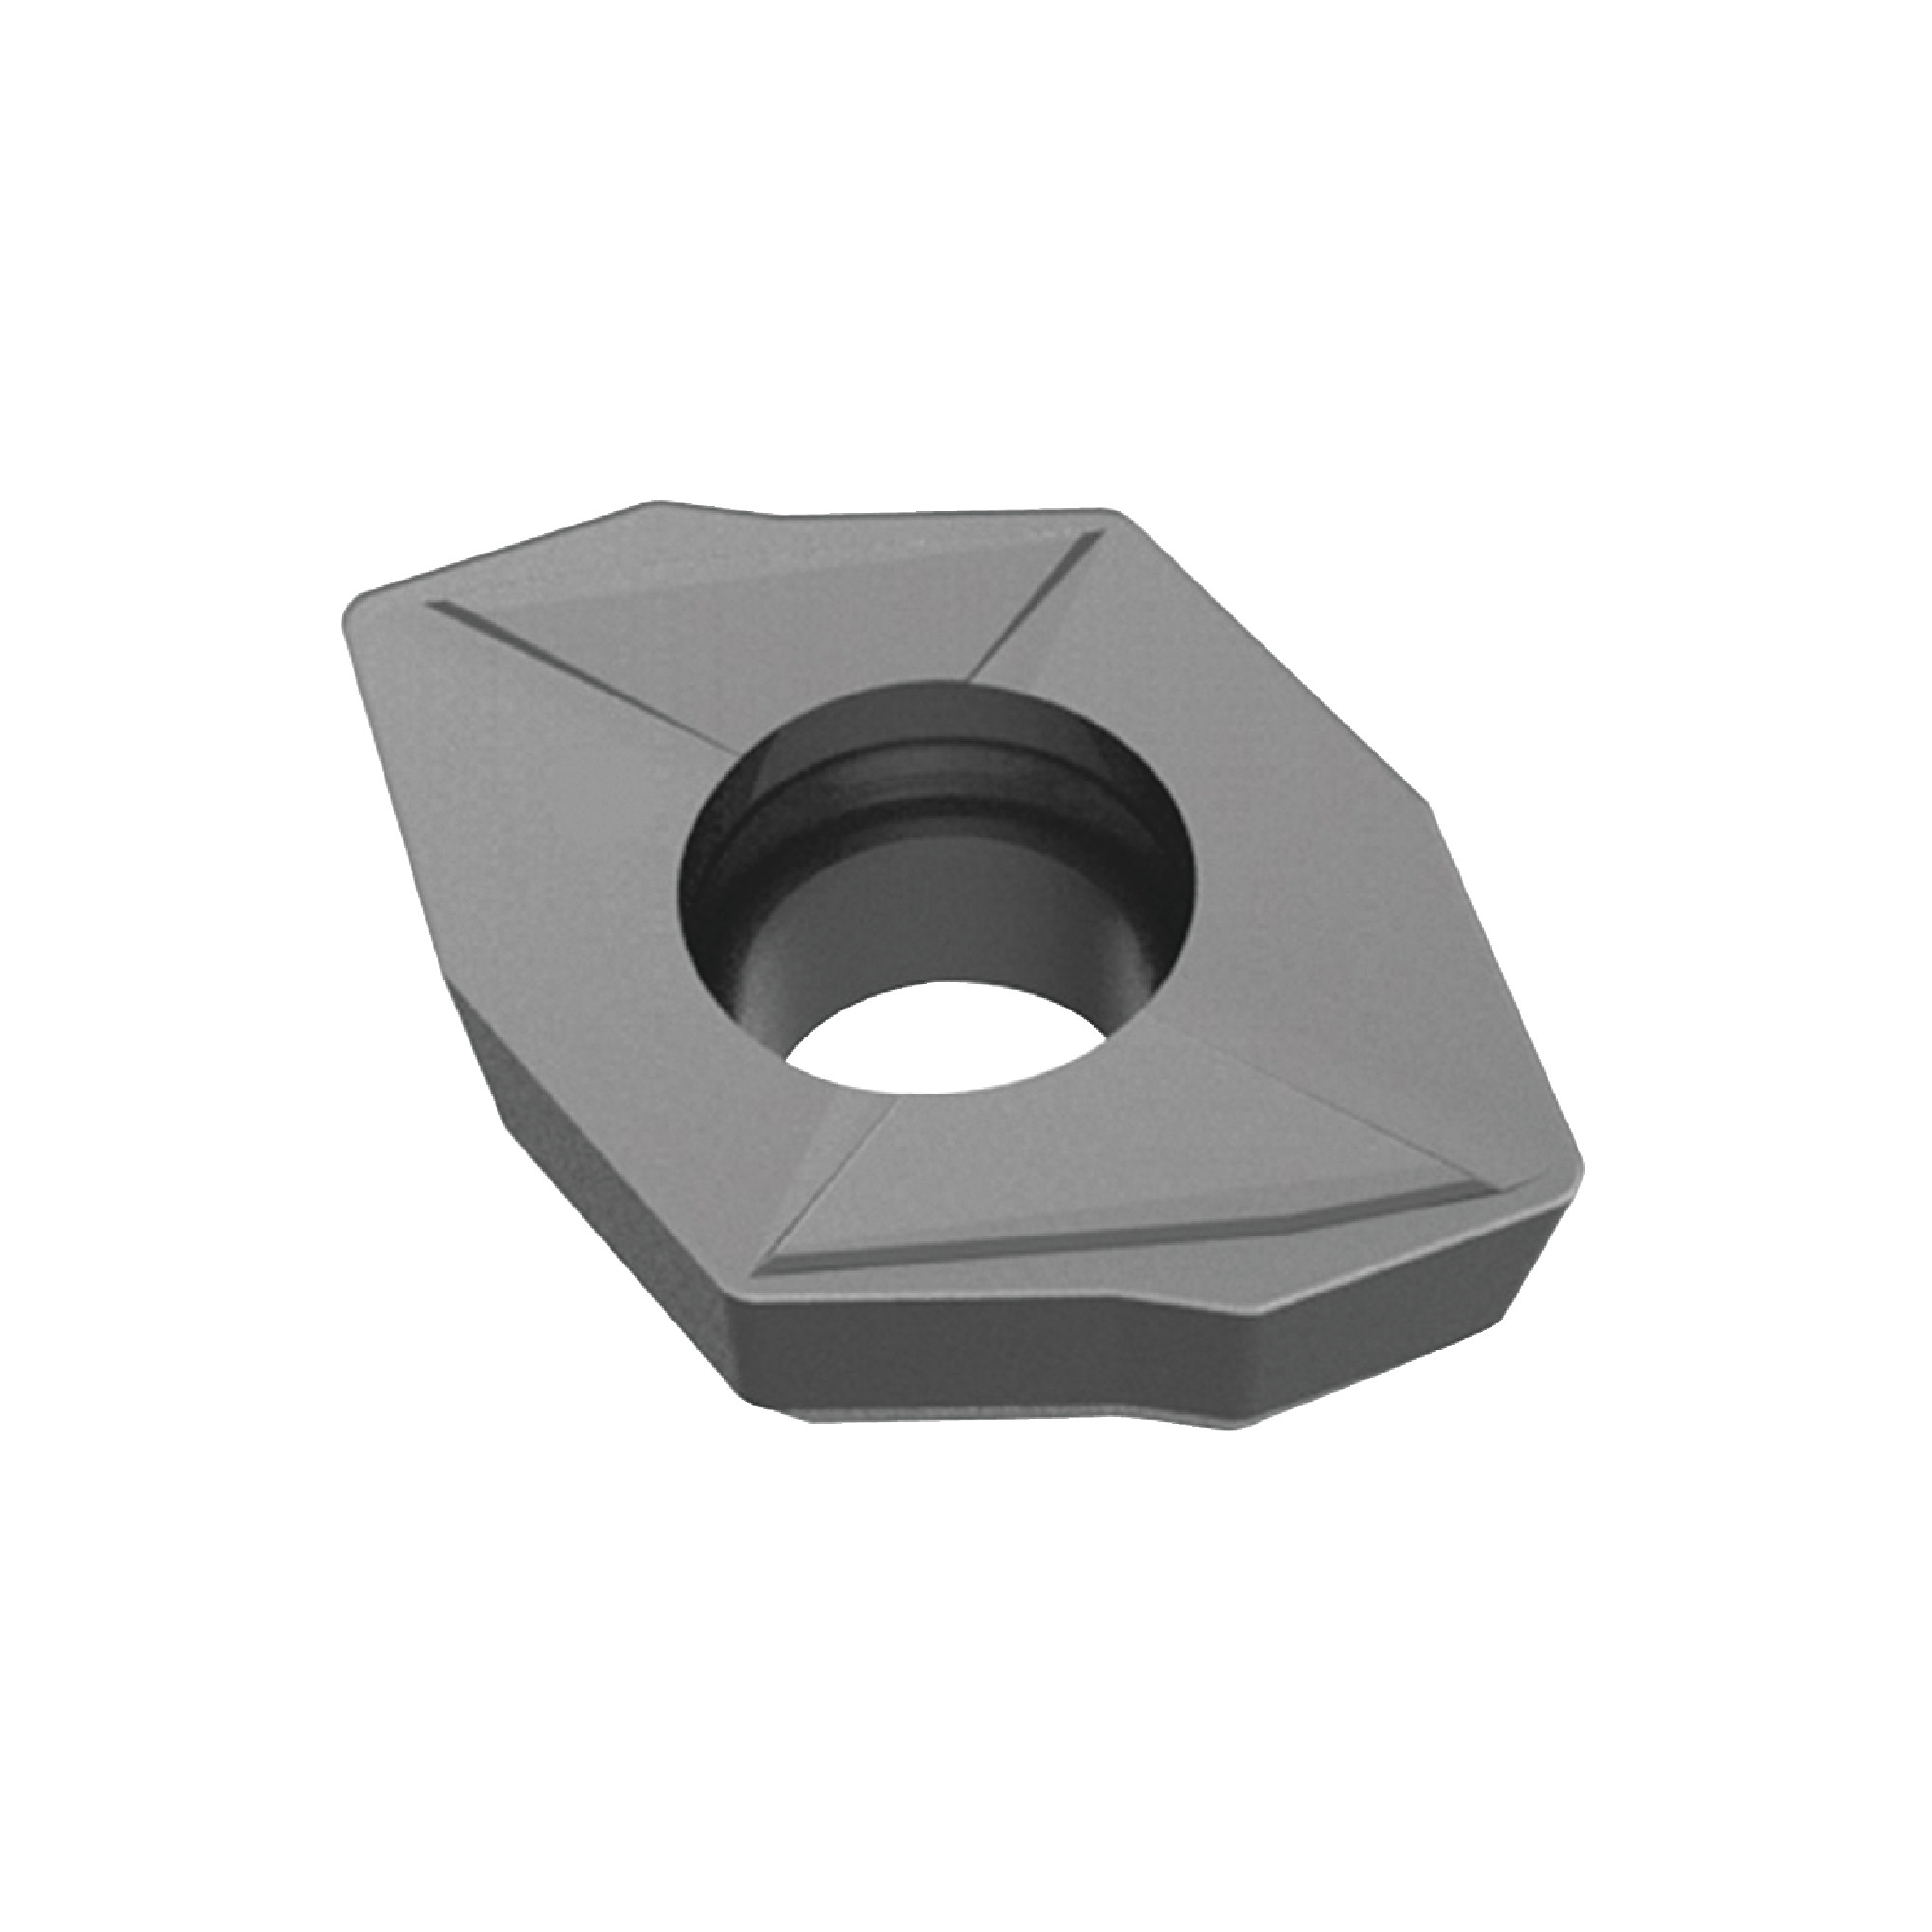 ALLIED -4T-040203-M Indexable Drilling Insert / 4TEX Series